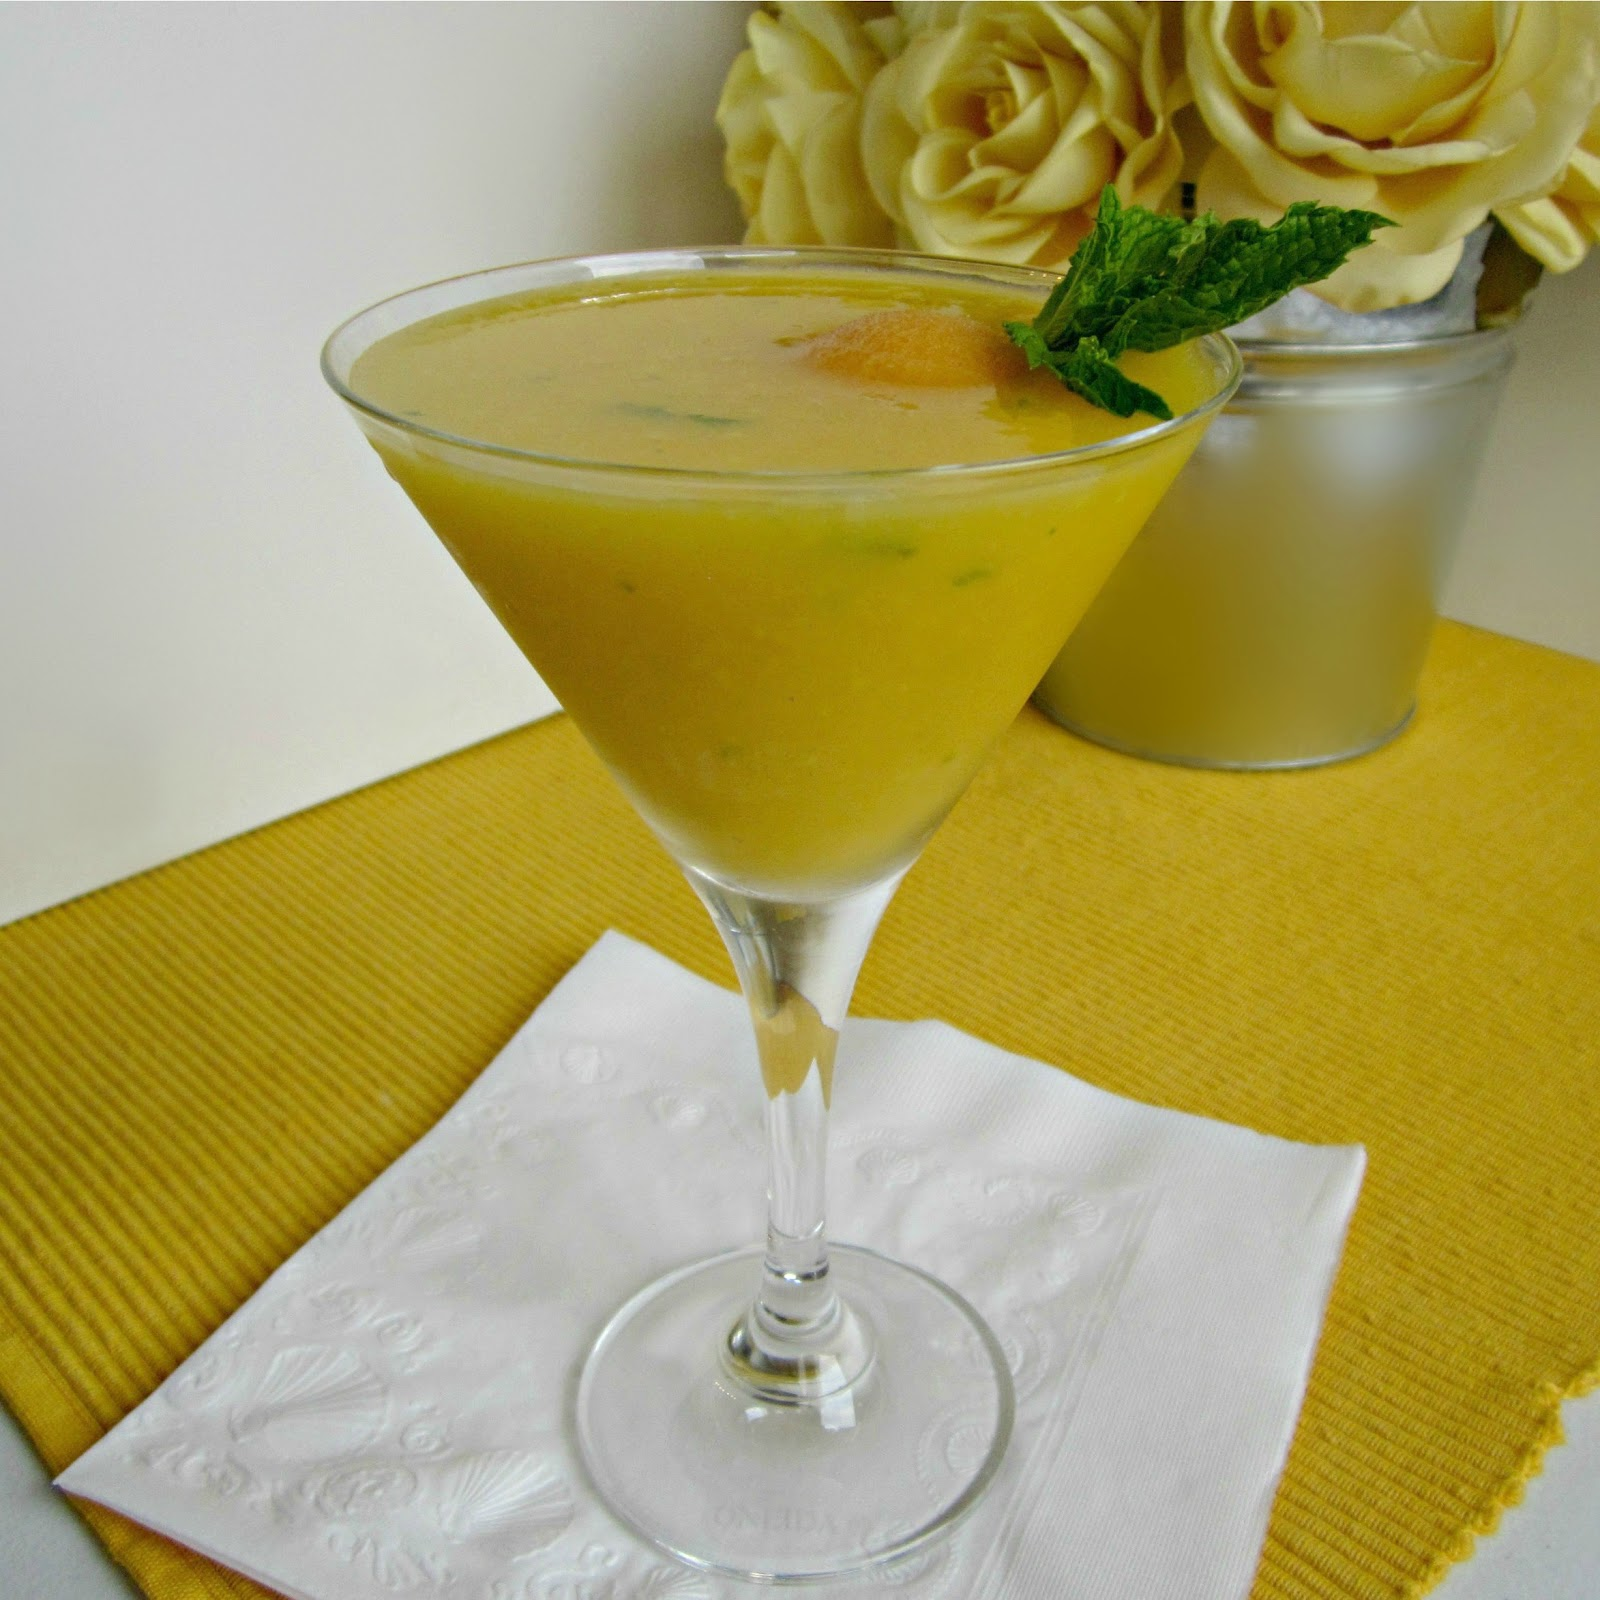 To Make The Mango Puree, Place Peeled And Cut Mango Pieces (see Below)